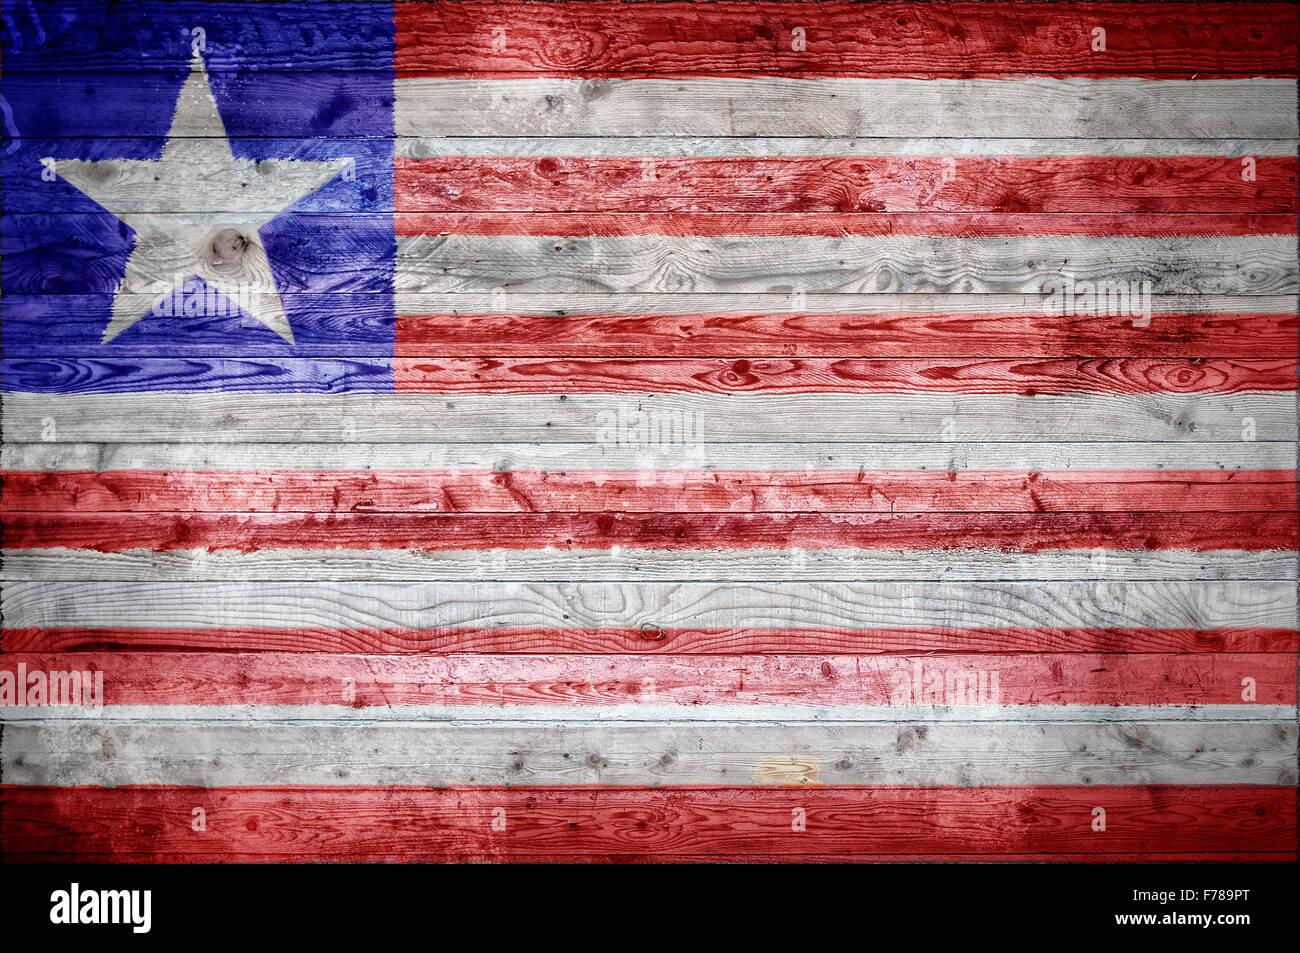 A vignetted background image of the flag of Liberia painted onto wooden boards of a wall or floor. - Stock Image